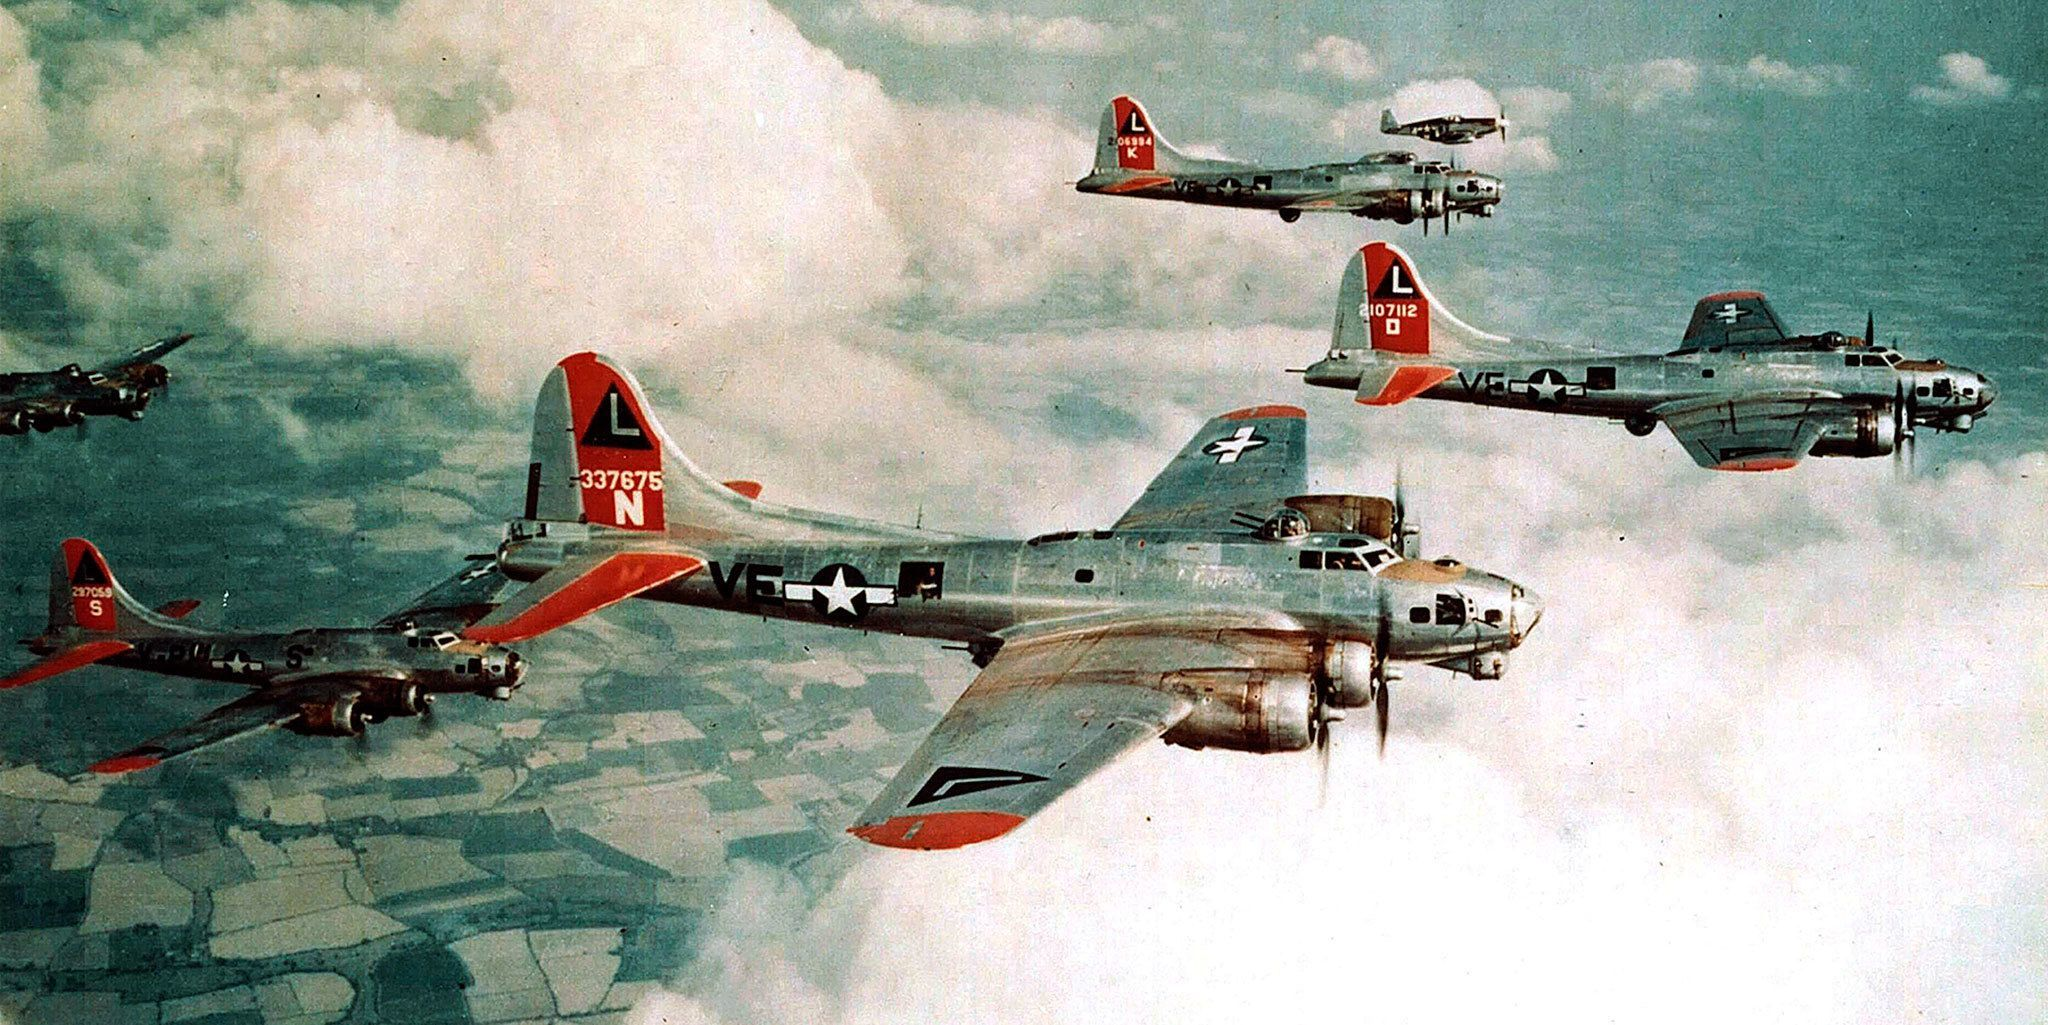 B-17G Fortresses of the 381st Bomb Group are escorted by a P-51B of the 354th Fighter Squadron in 1944. (National Archives and Records Administration)